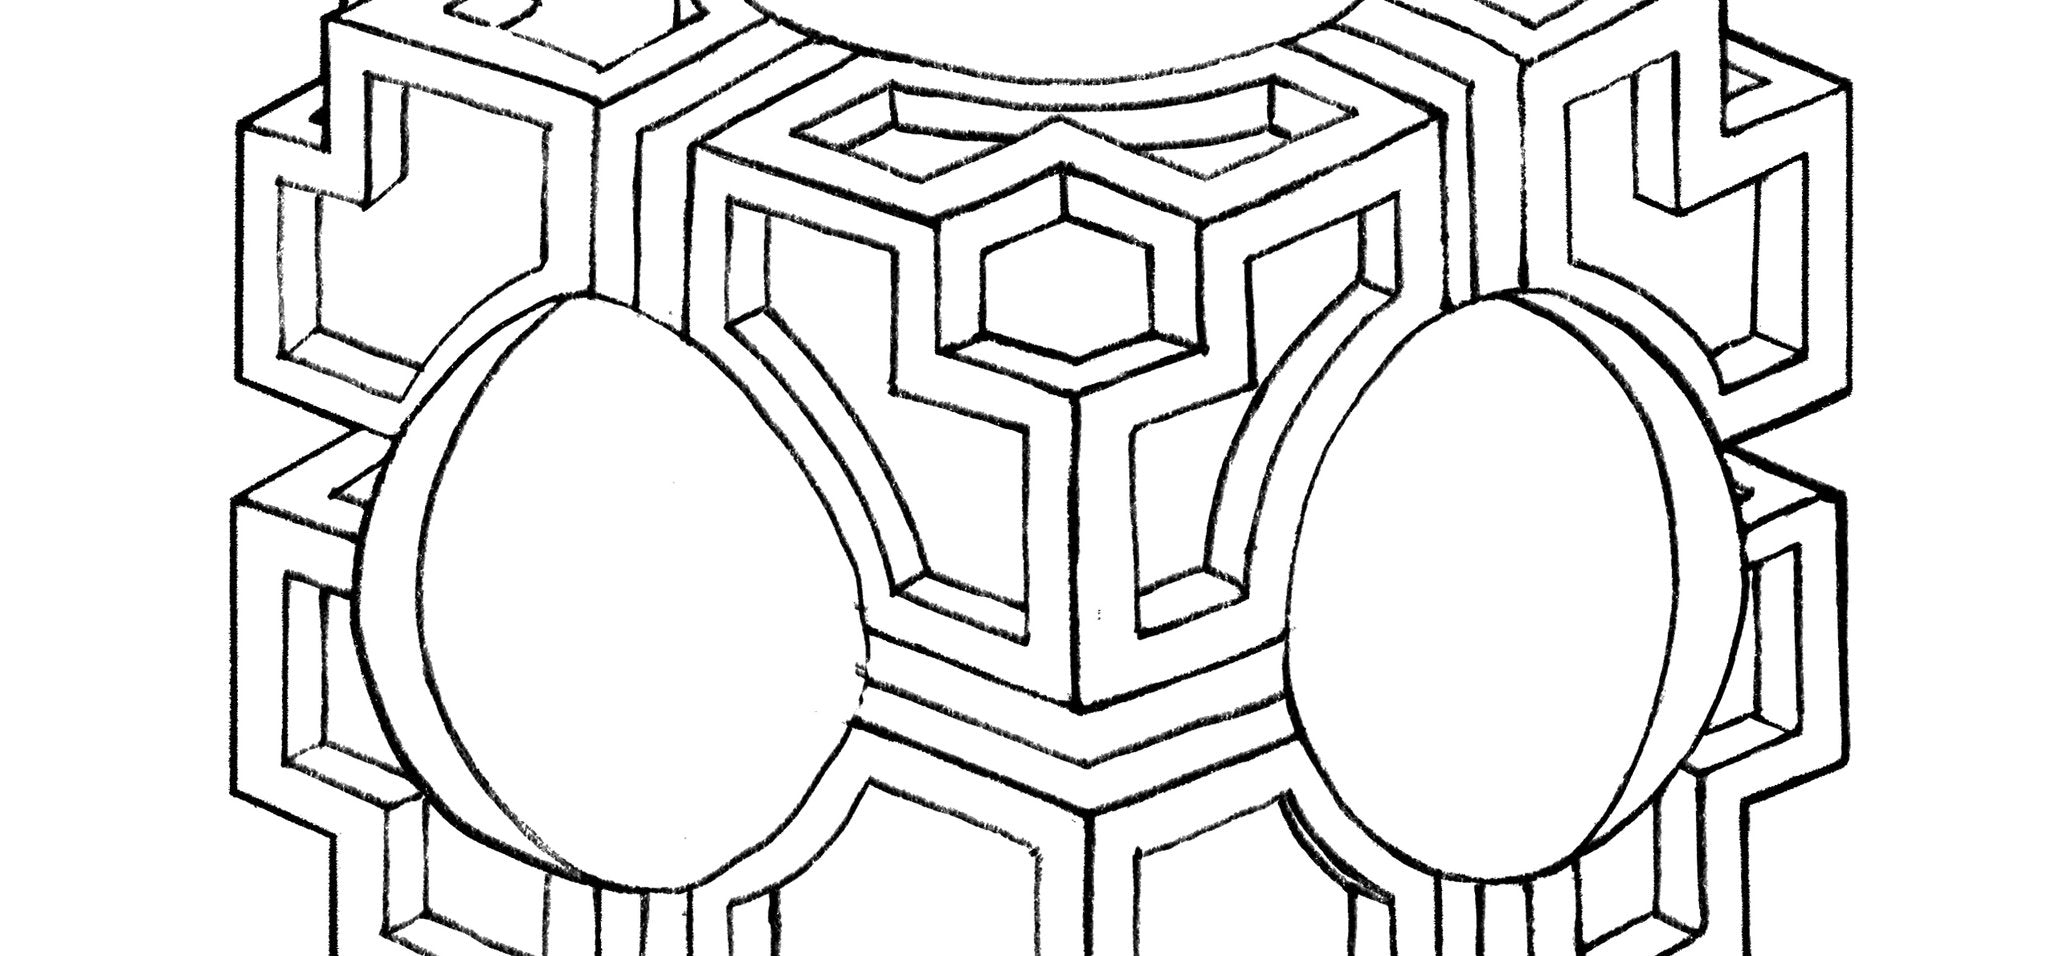 Beeble Box Free Coloring Page | Saturday Morning Cartoons